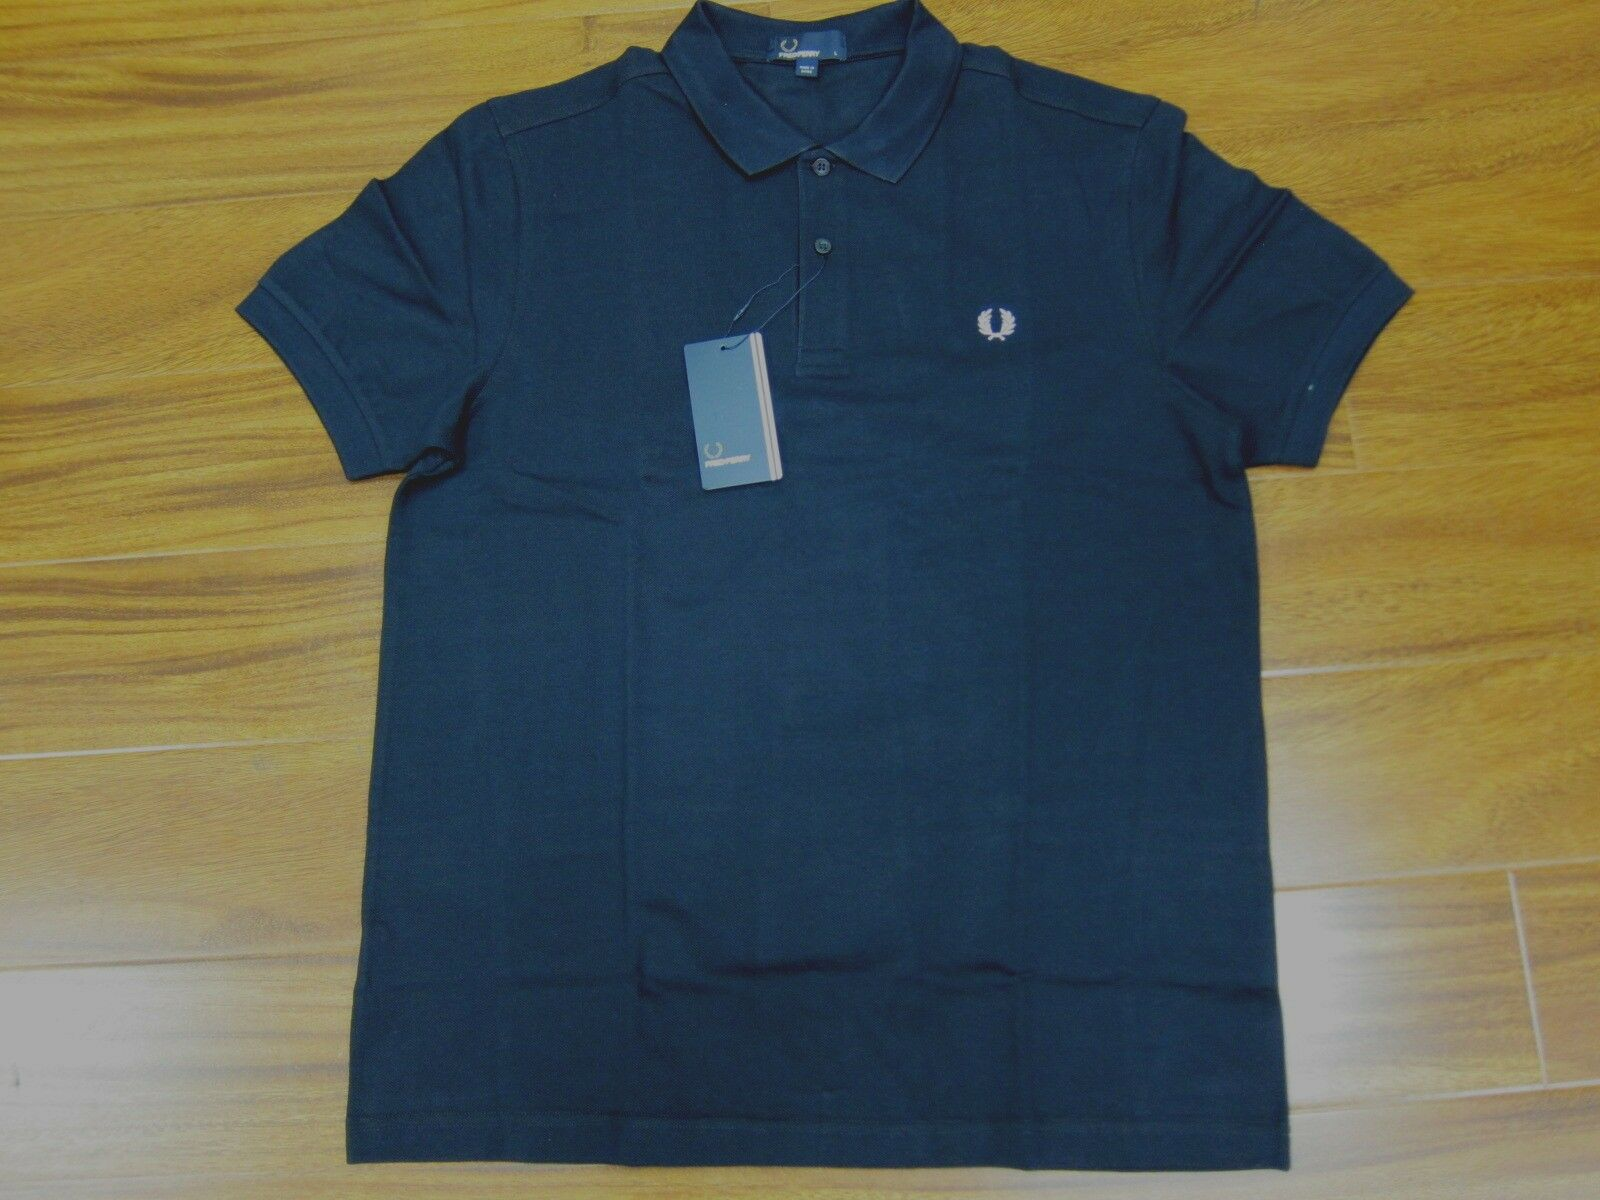 Fred Perry Cotton Pique Polo Shirts Plain Fit  M6000 Navy